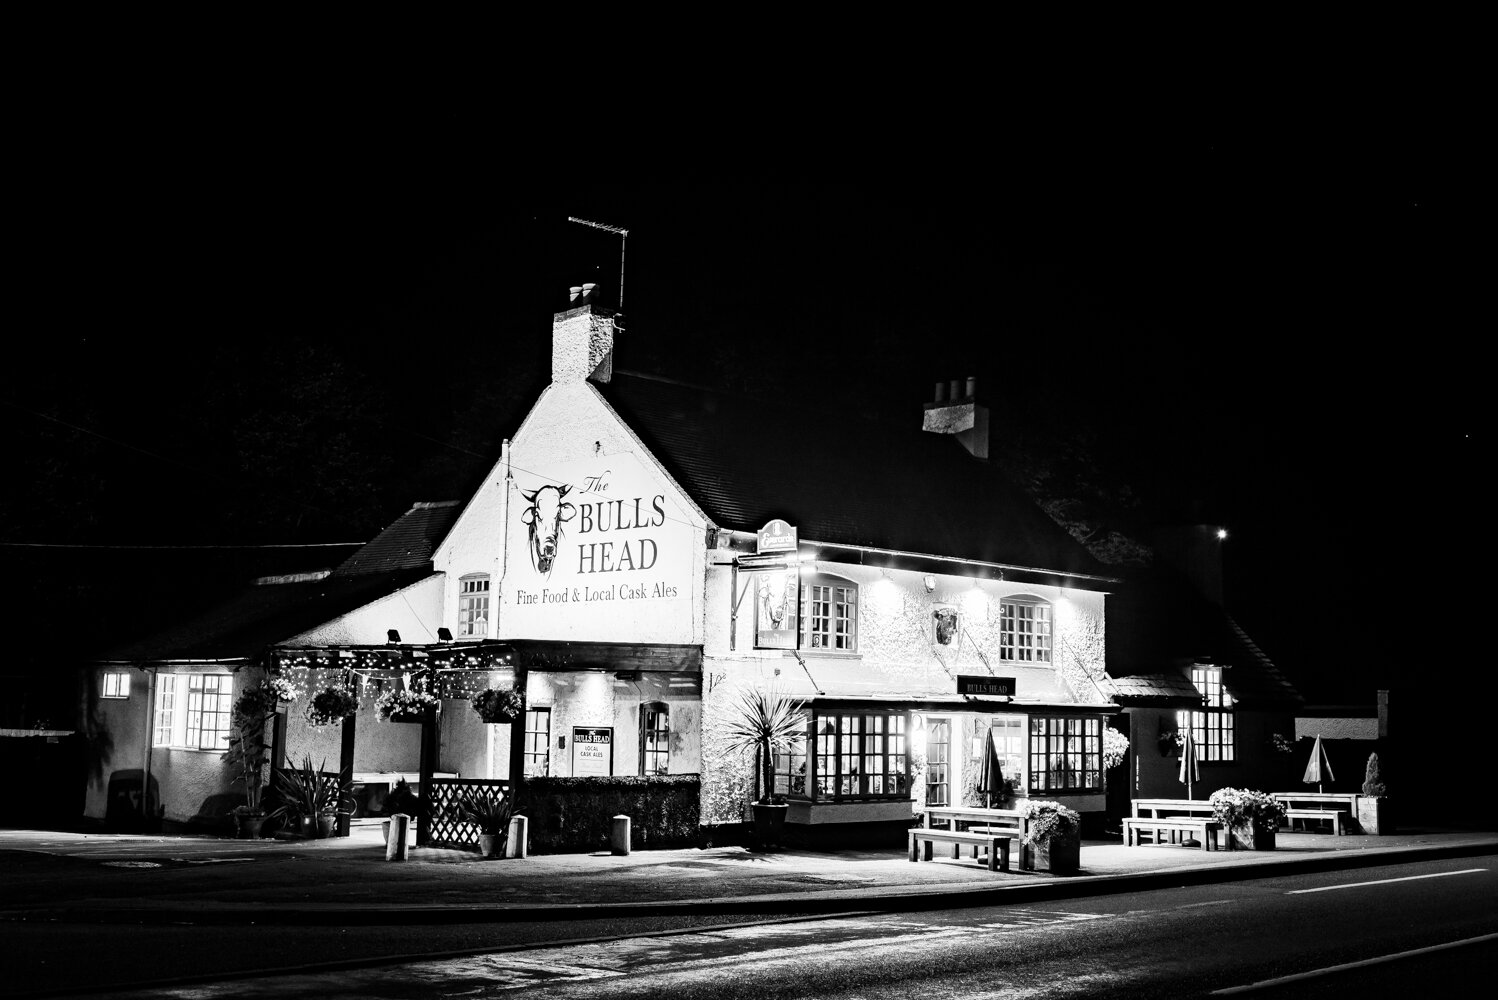 The Bulls Head, Leicester Forest West